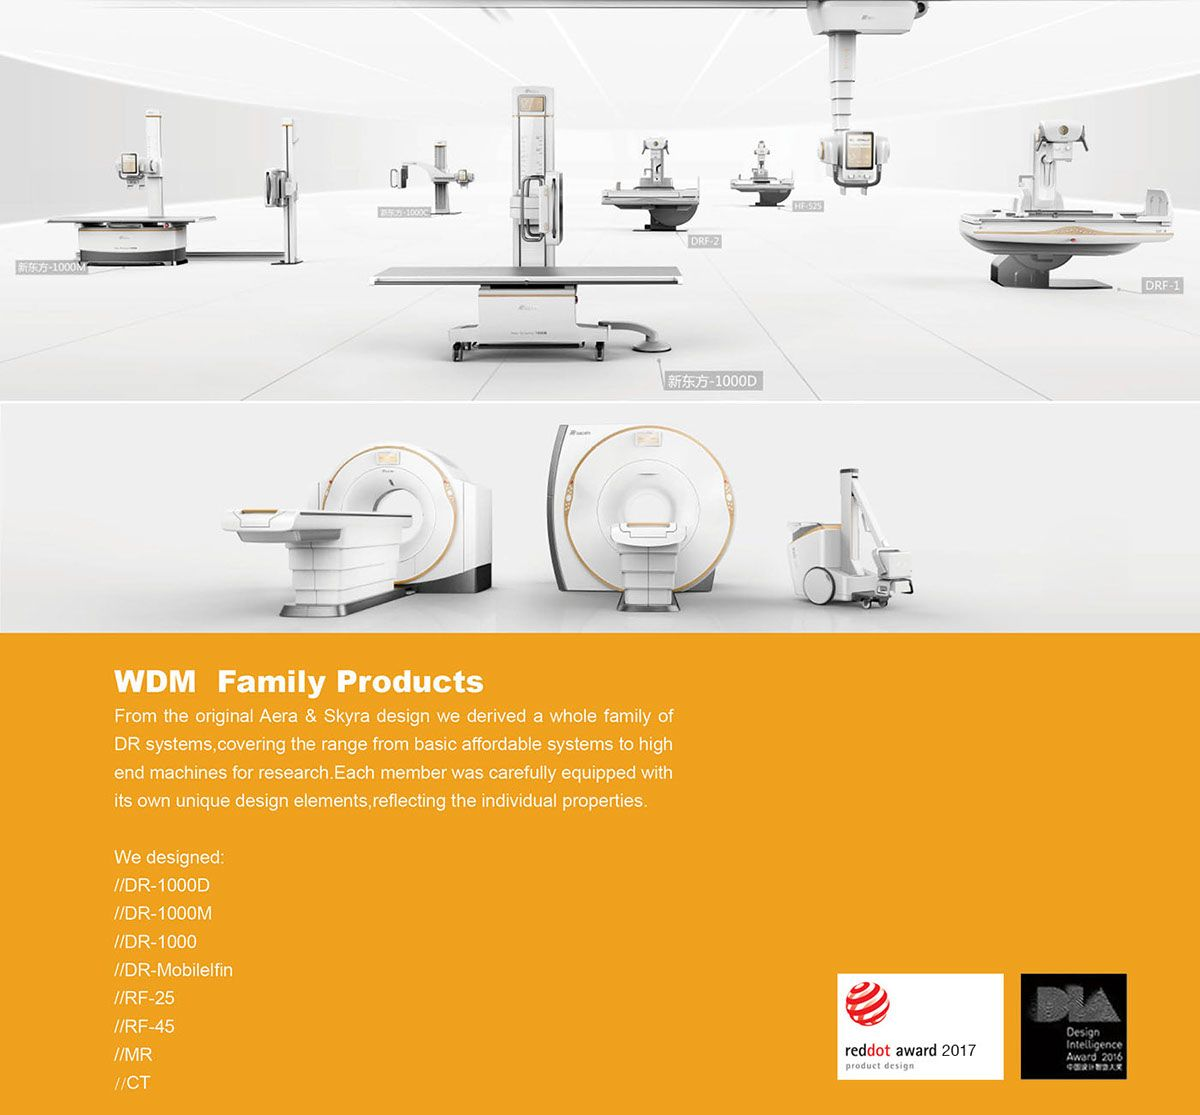 Wandong Medical Product Identity System Design On Behance In 2020 Medical Design Identity